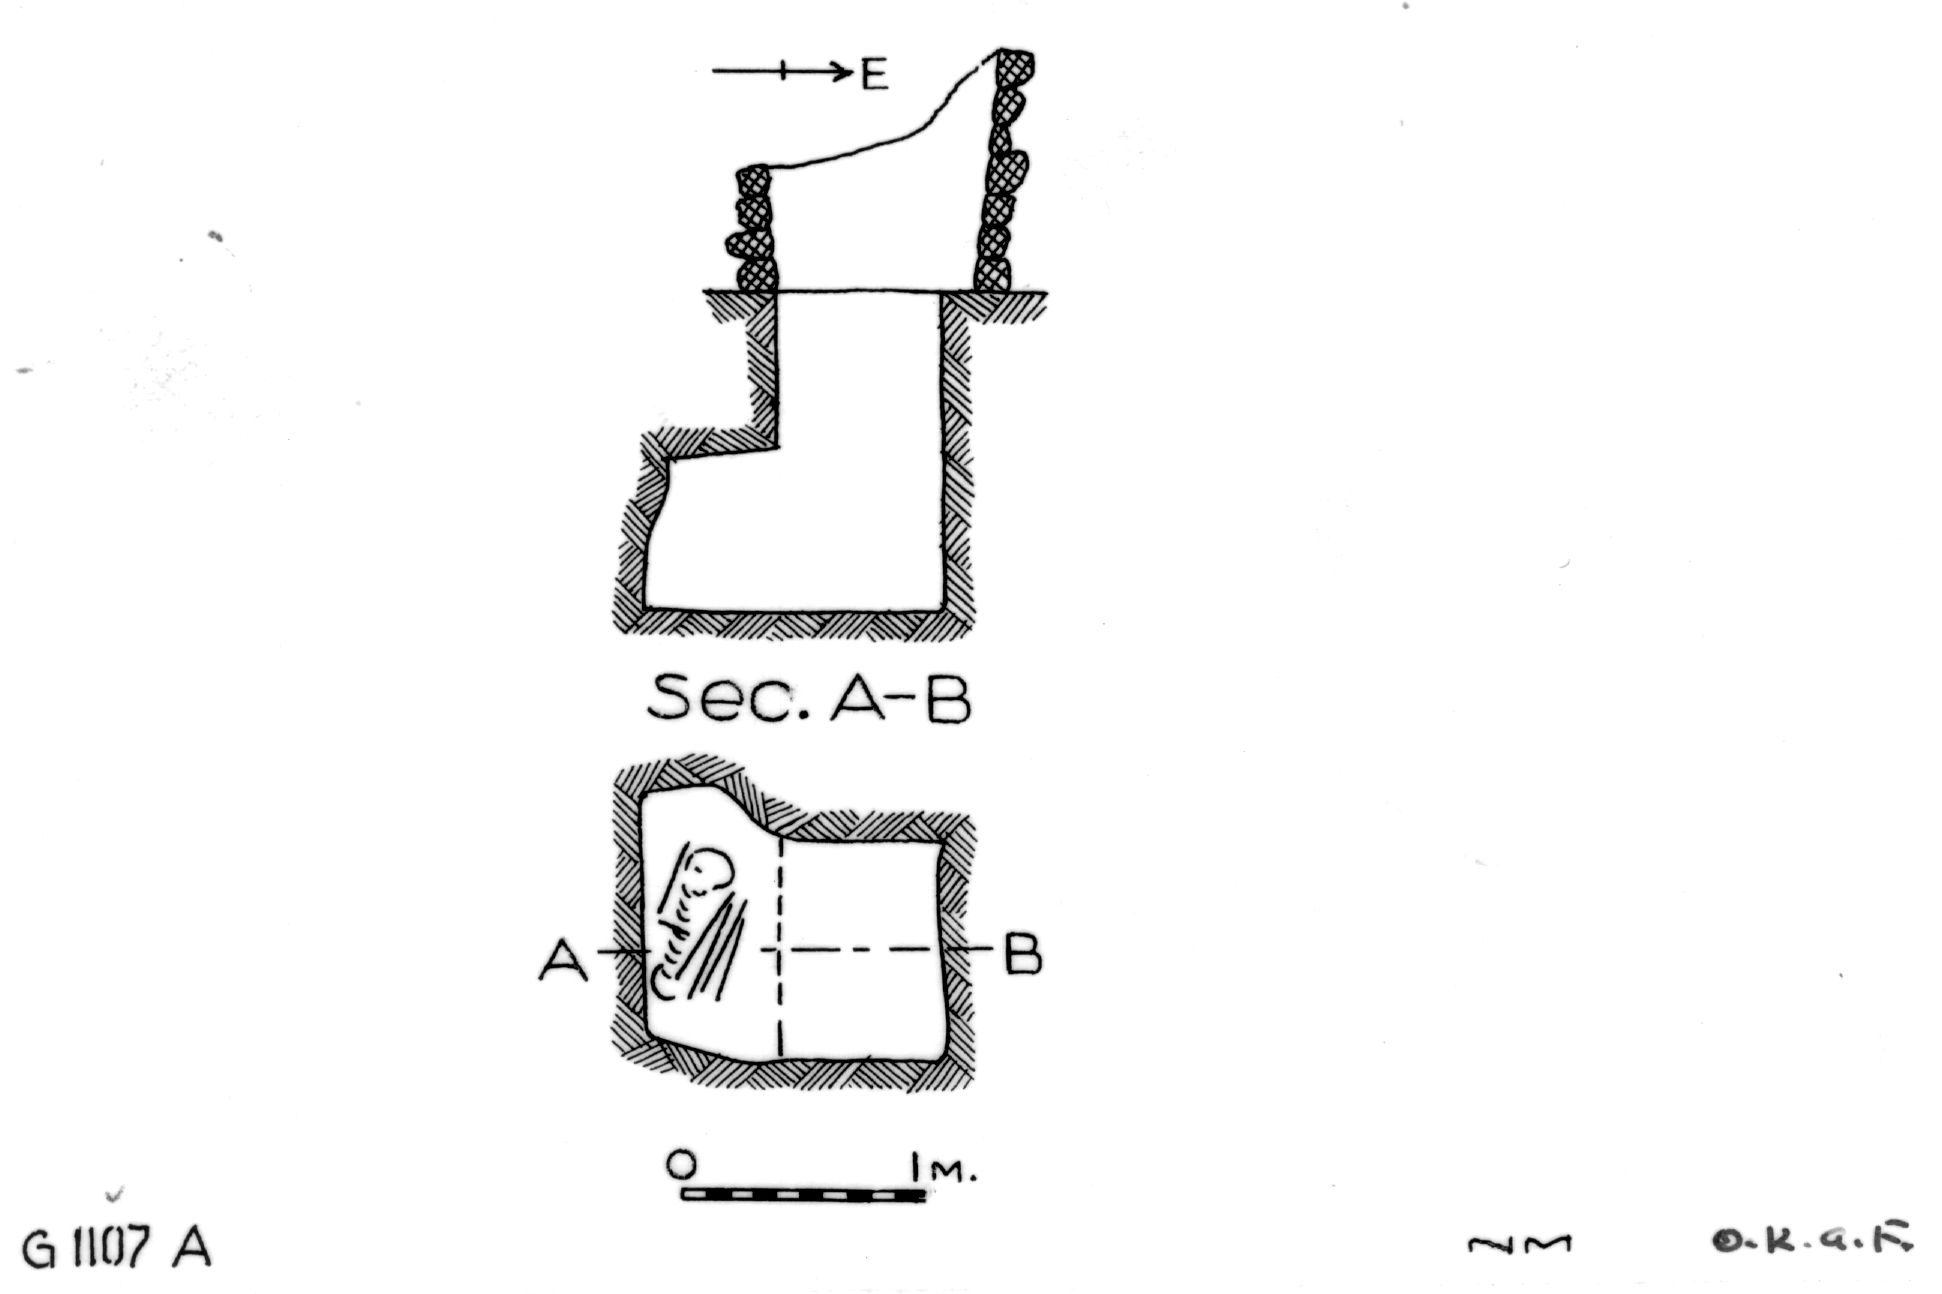 Maps and plans: G 1107, Shaft A